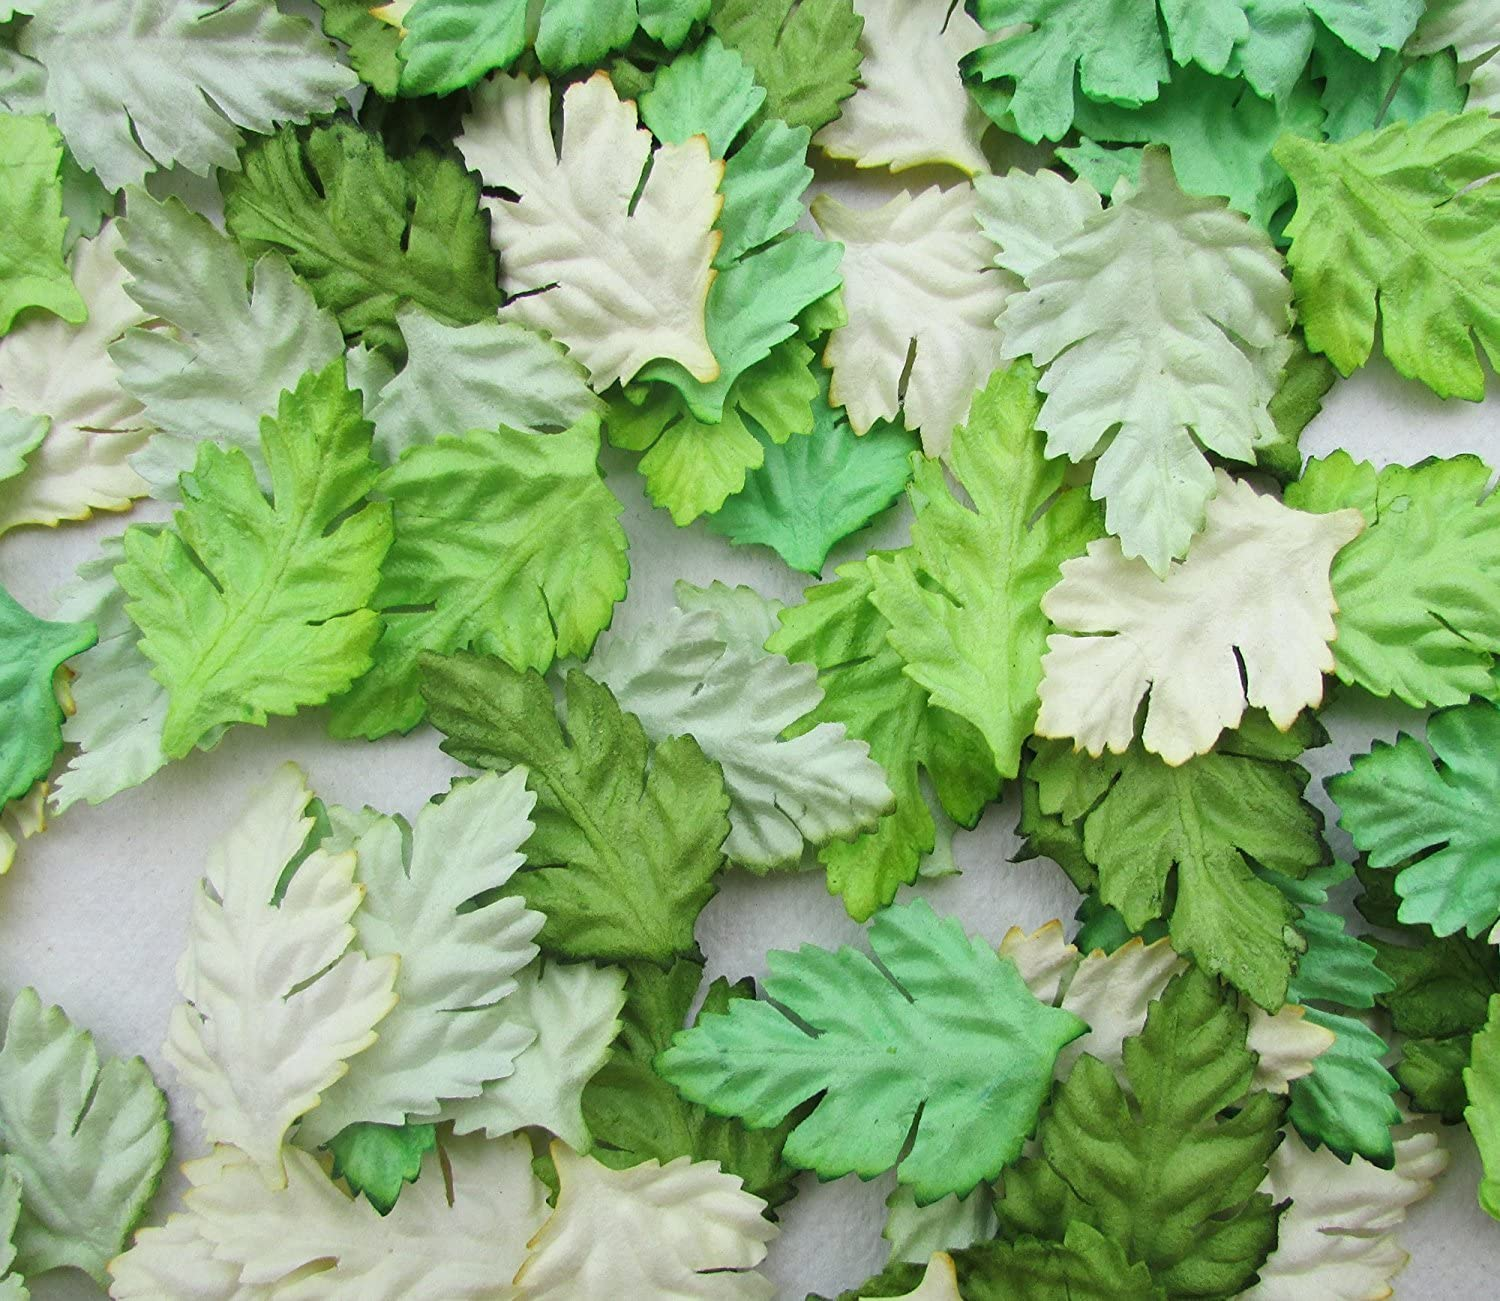 100 pcs Patch Green Leaves 37x23 mm Mulberry Paper Scrapbooking Wedding Doll House Supplies Card,Artificial Leave Products from Thailand